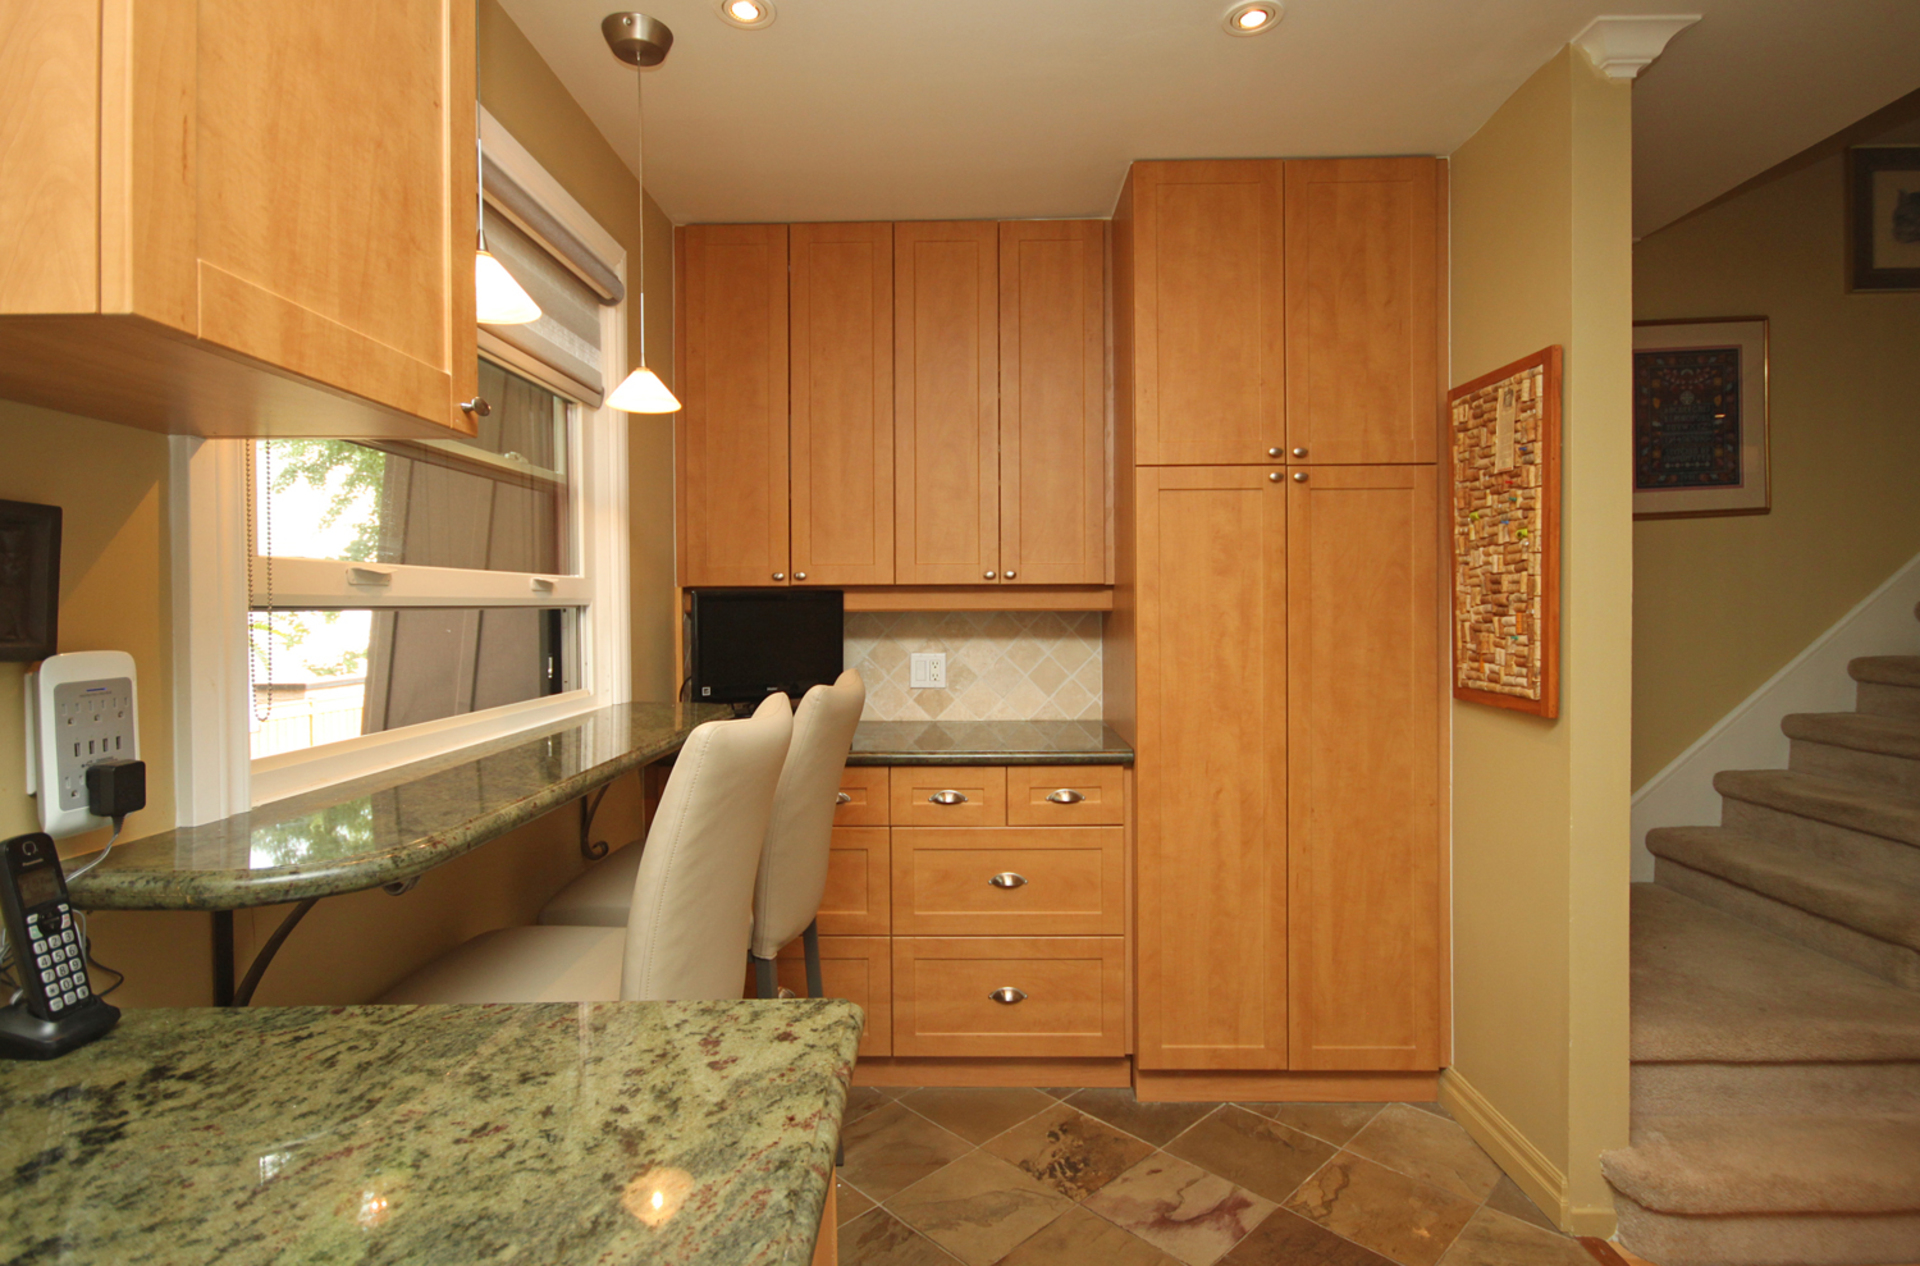 Kitchen at 894 Millwood Road, Leaside, Toronto